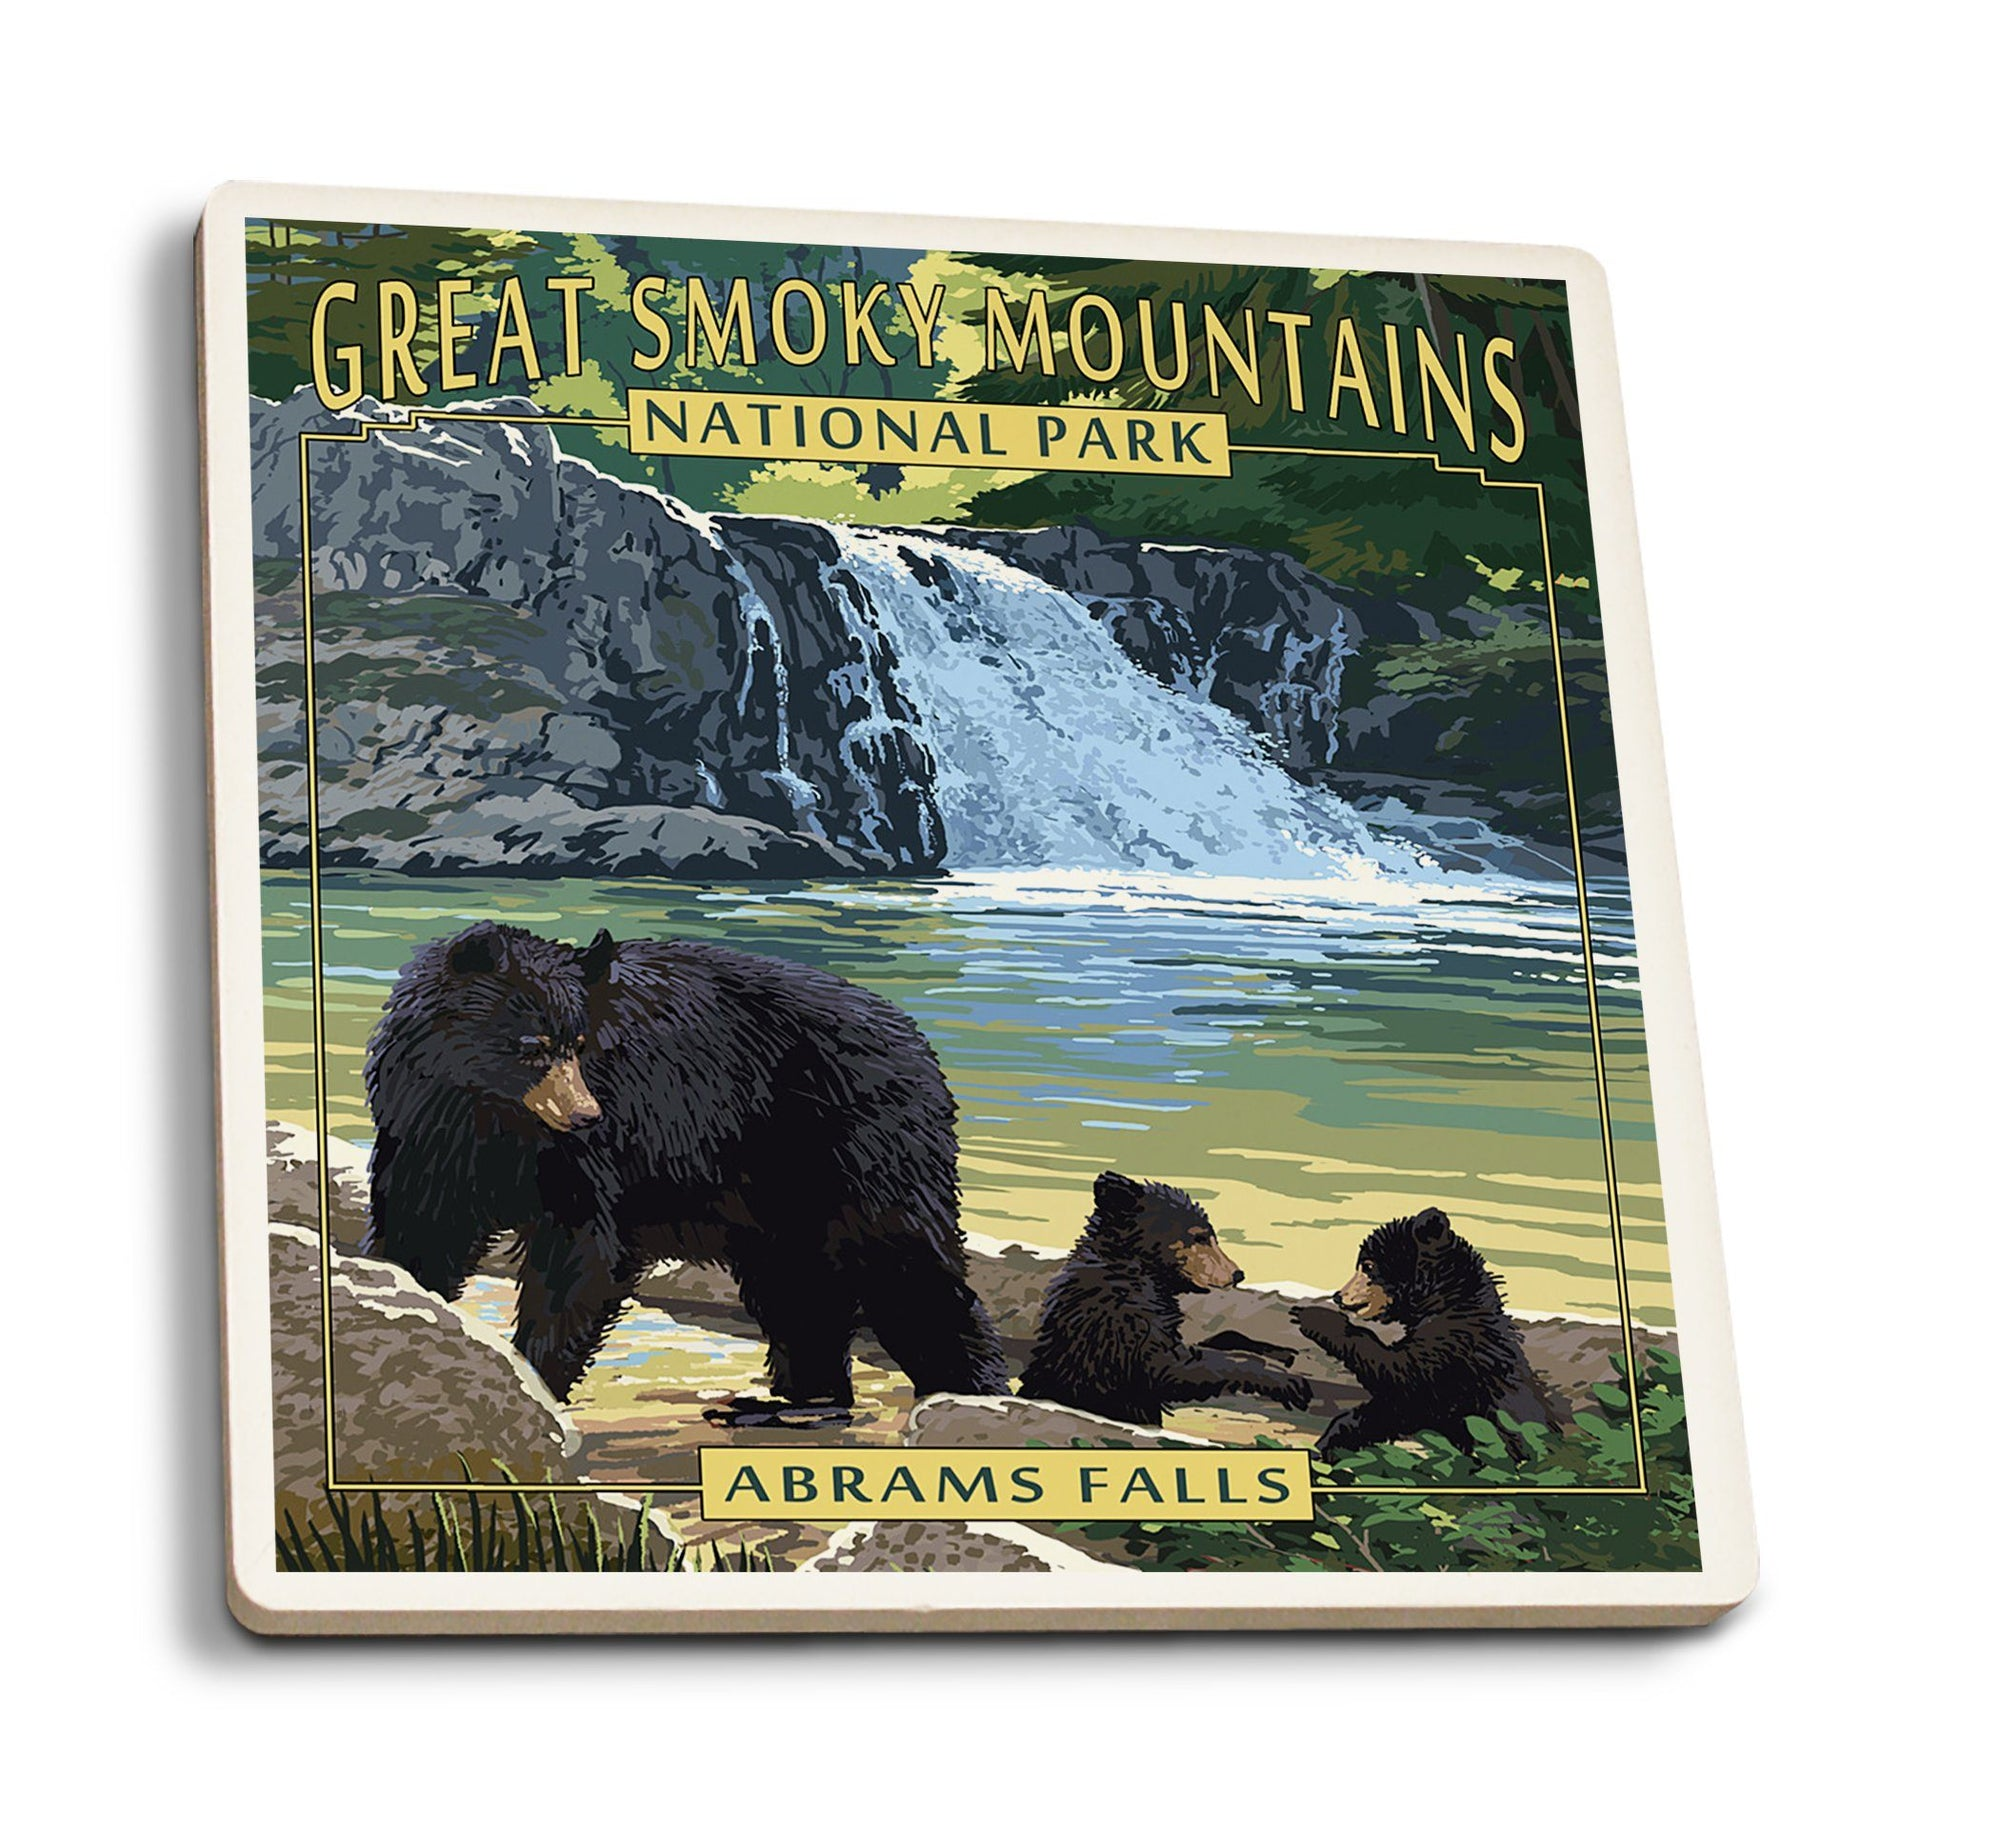 Coaster (Great Smoky Mountains National Park, Tennesseee - Abrams Falls - Lantern Press Artwork) Coaster Nightingale Boutique Coaster Pack